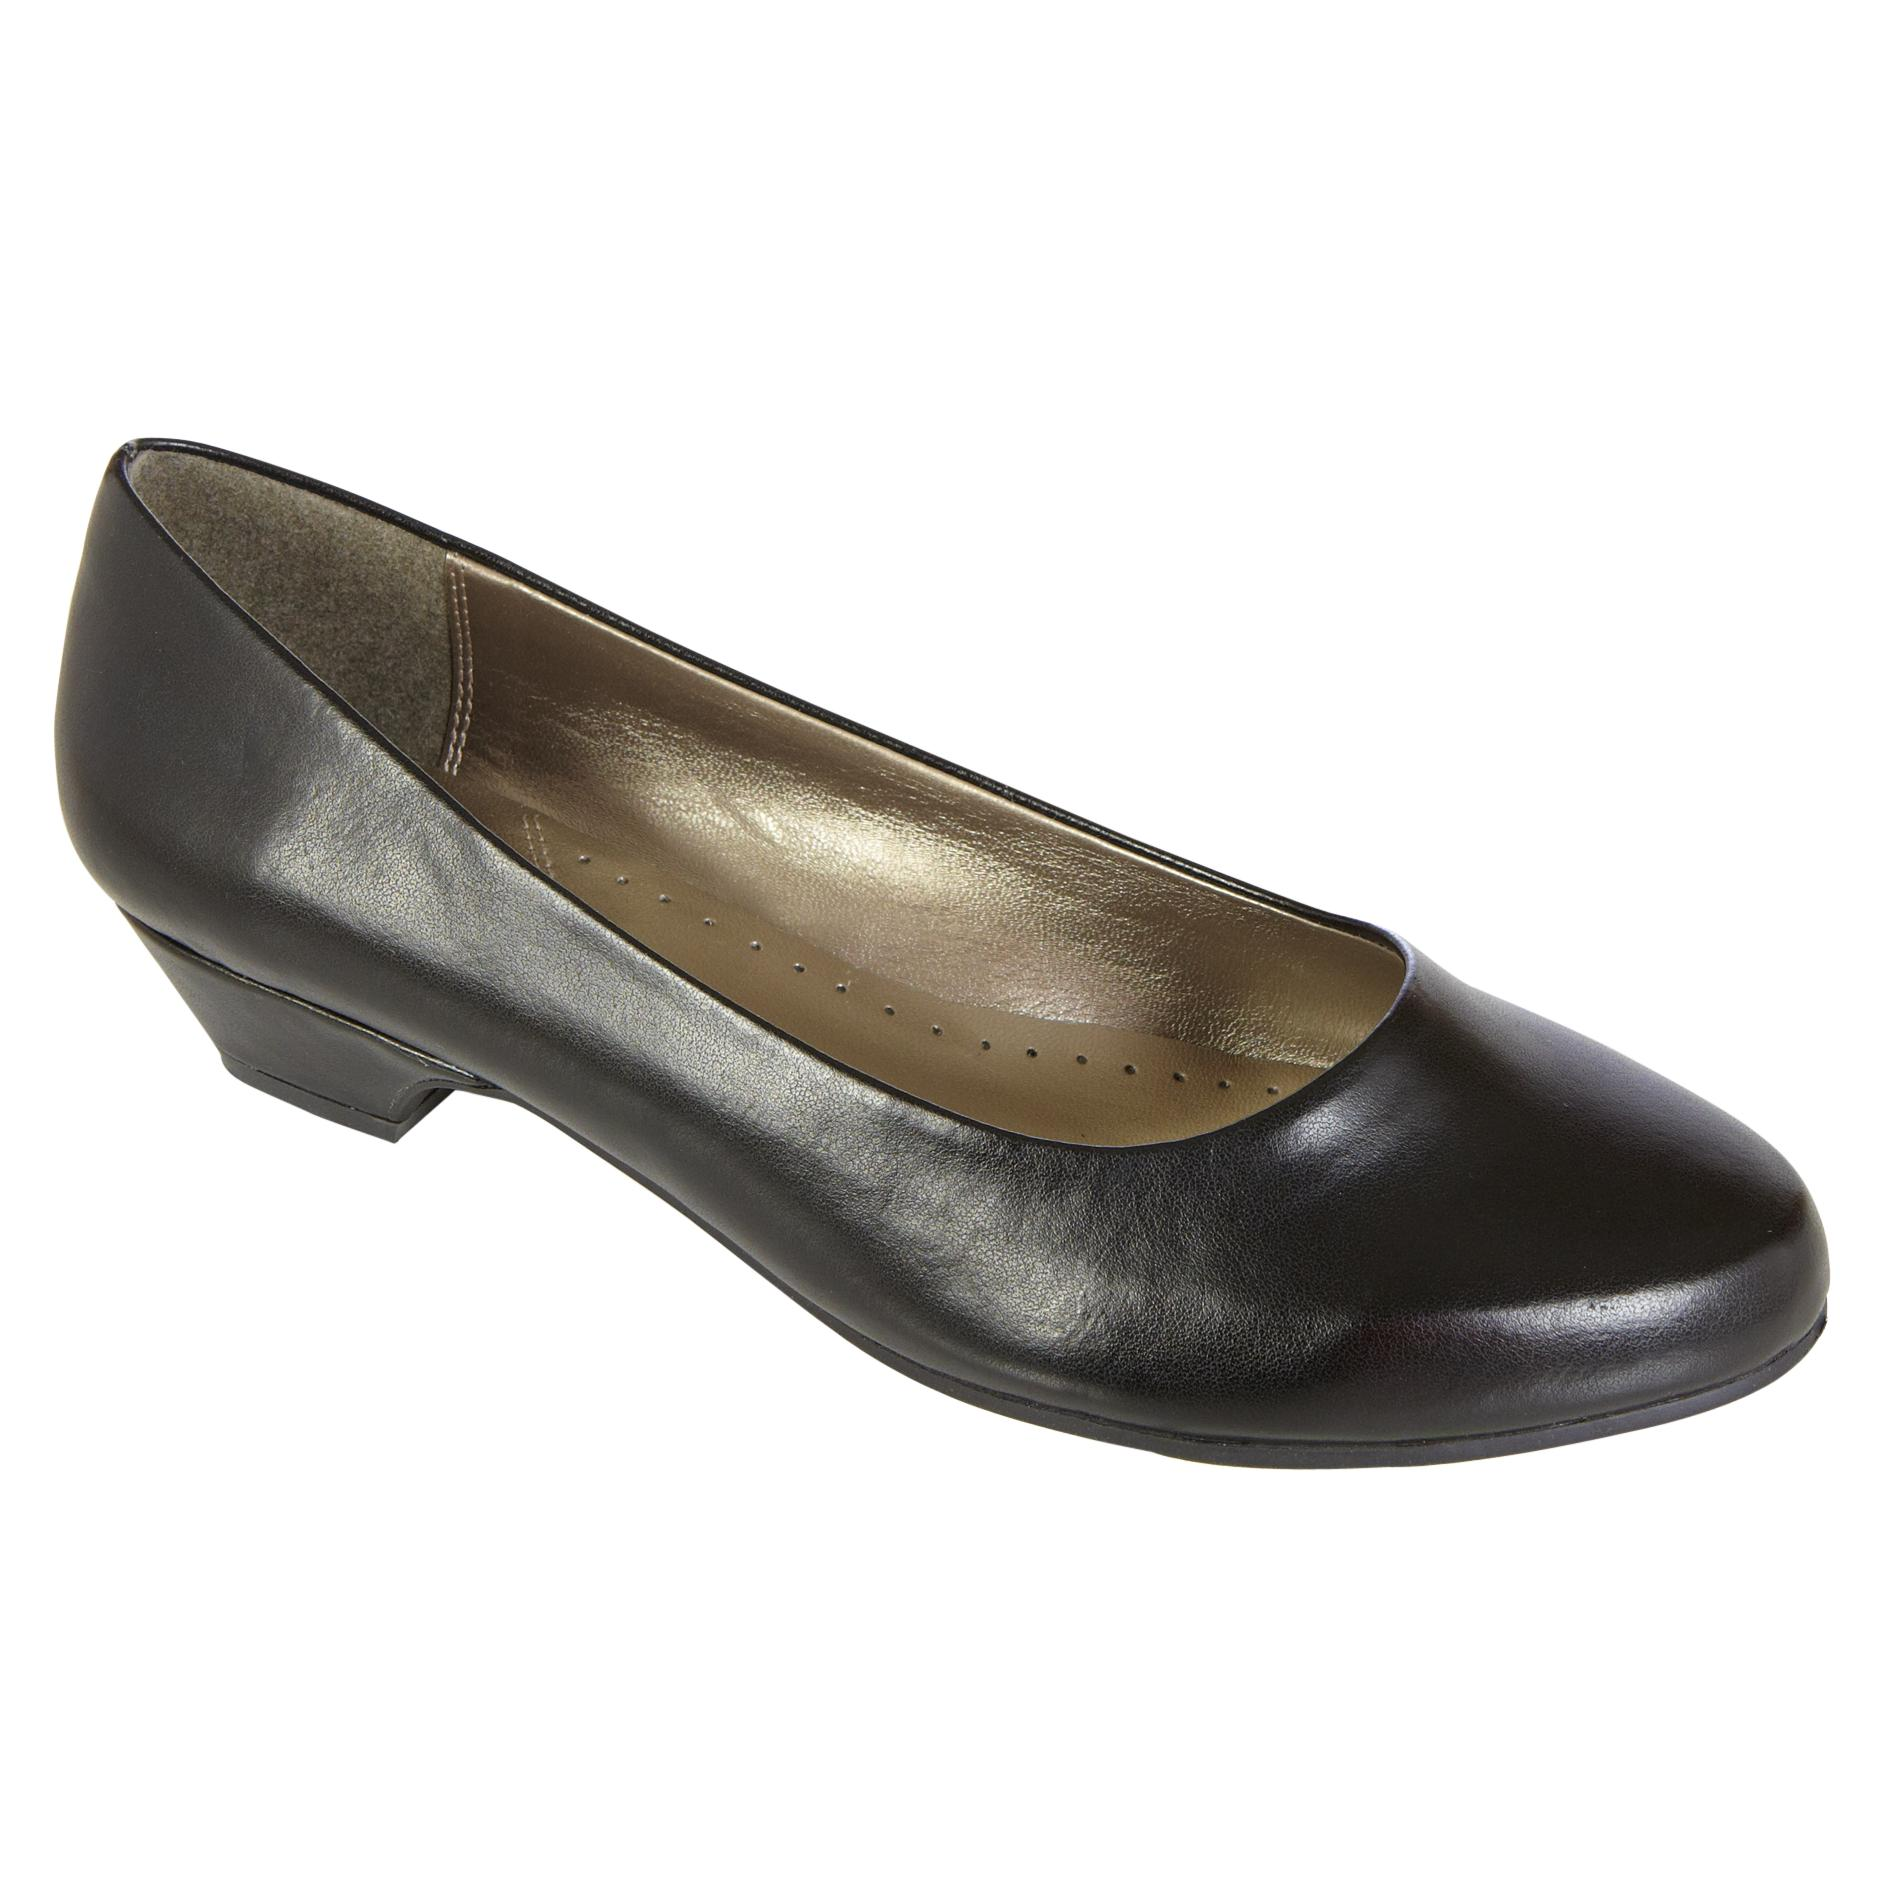 Basic Editions  Women's Dress Shoe Renee